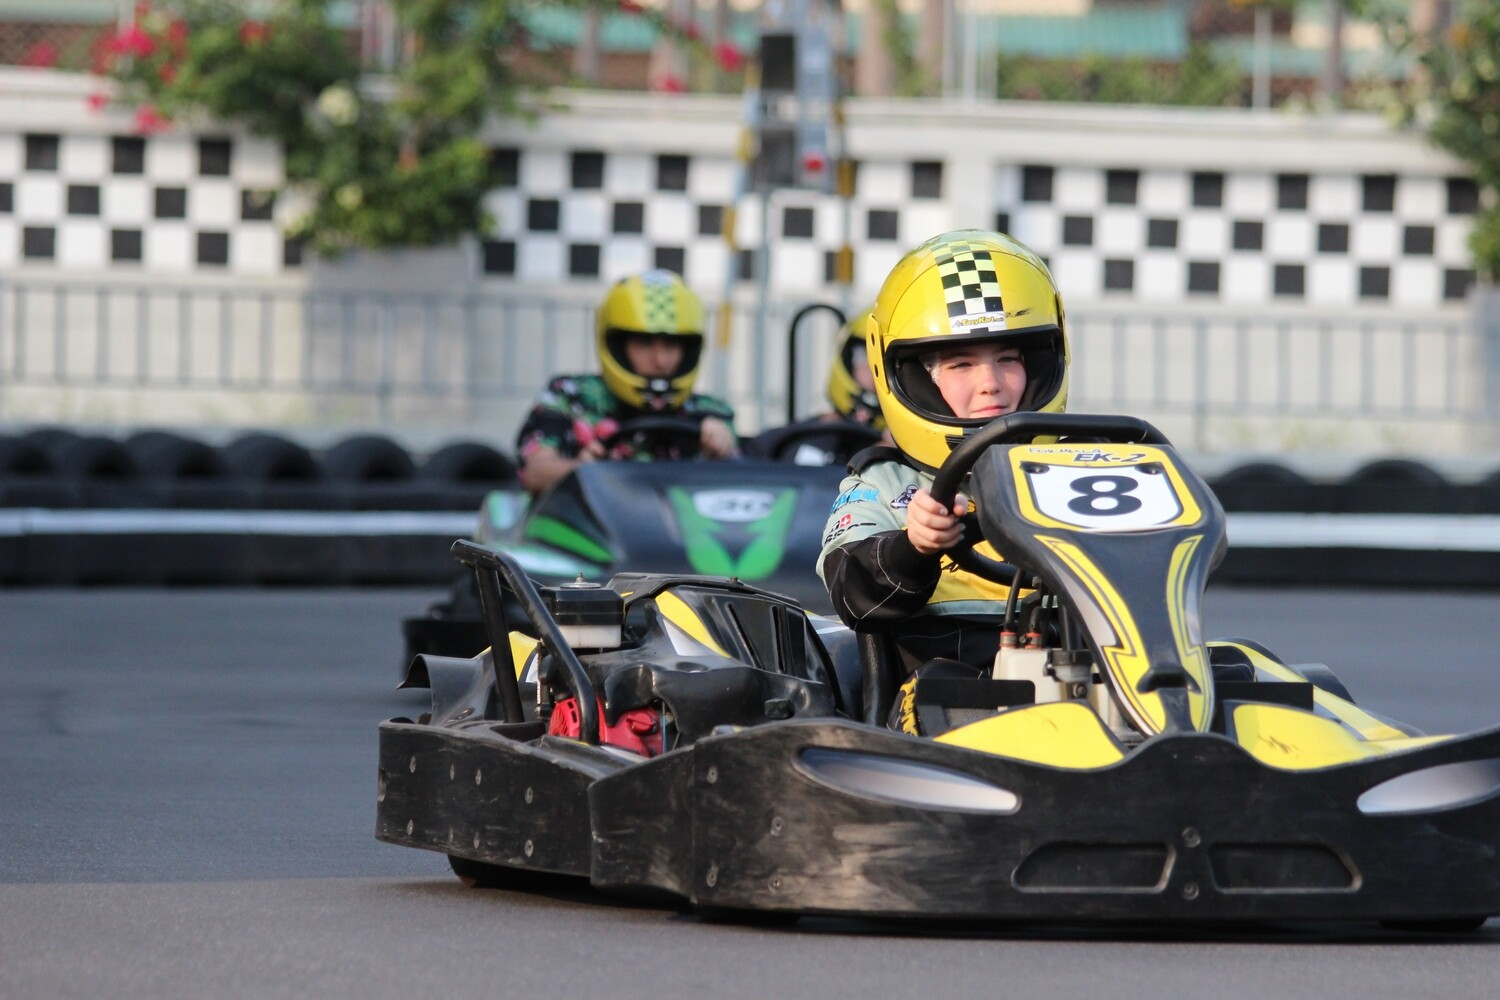 [5% OFF] 常规卡丁车 (1次) - Samui Regular kart (1 race)